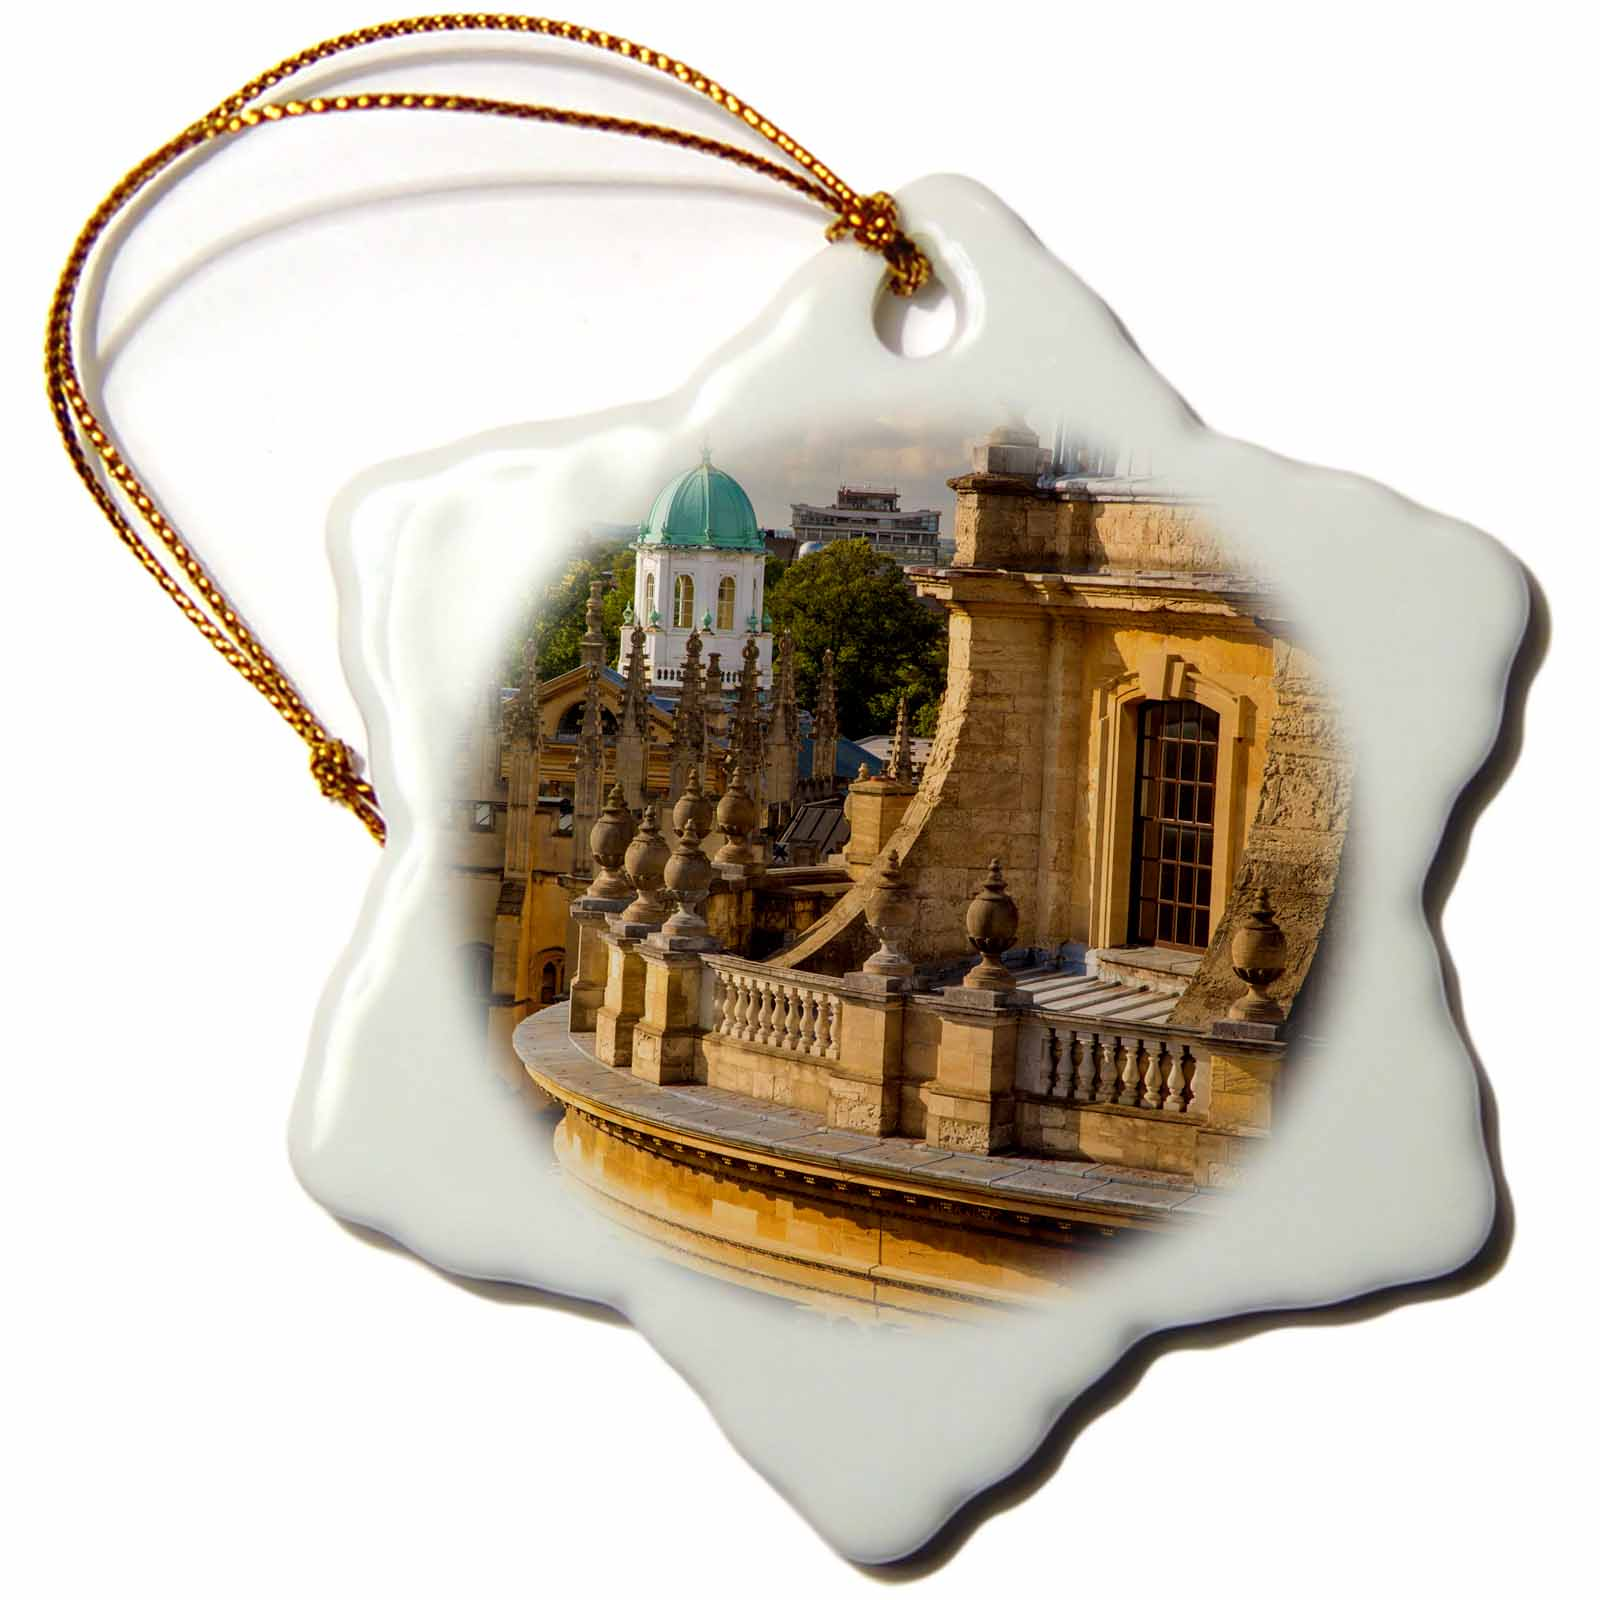 3dRose Radcliffe Camera, Science Library, Oxford, Oxfordshire, England - Snowflake Ornament, 3-inch